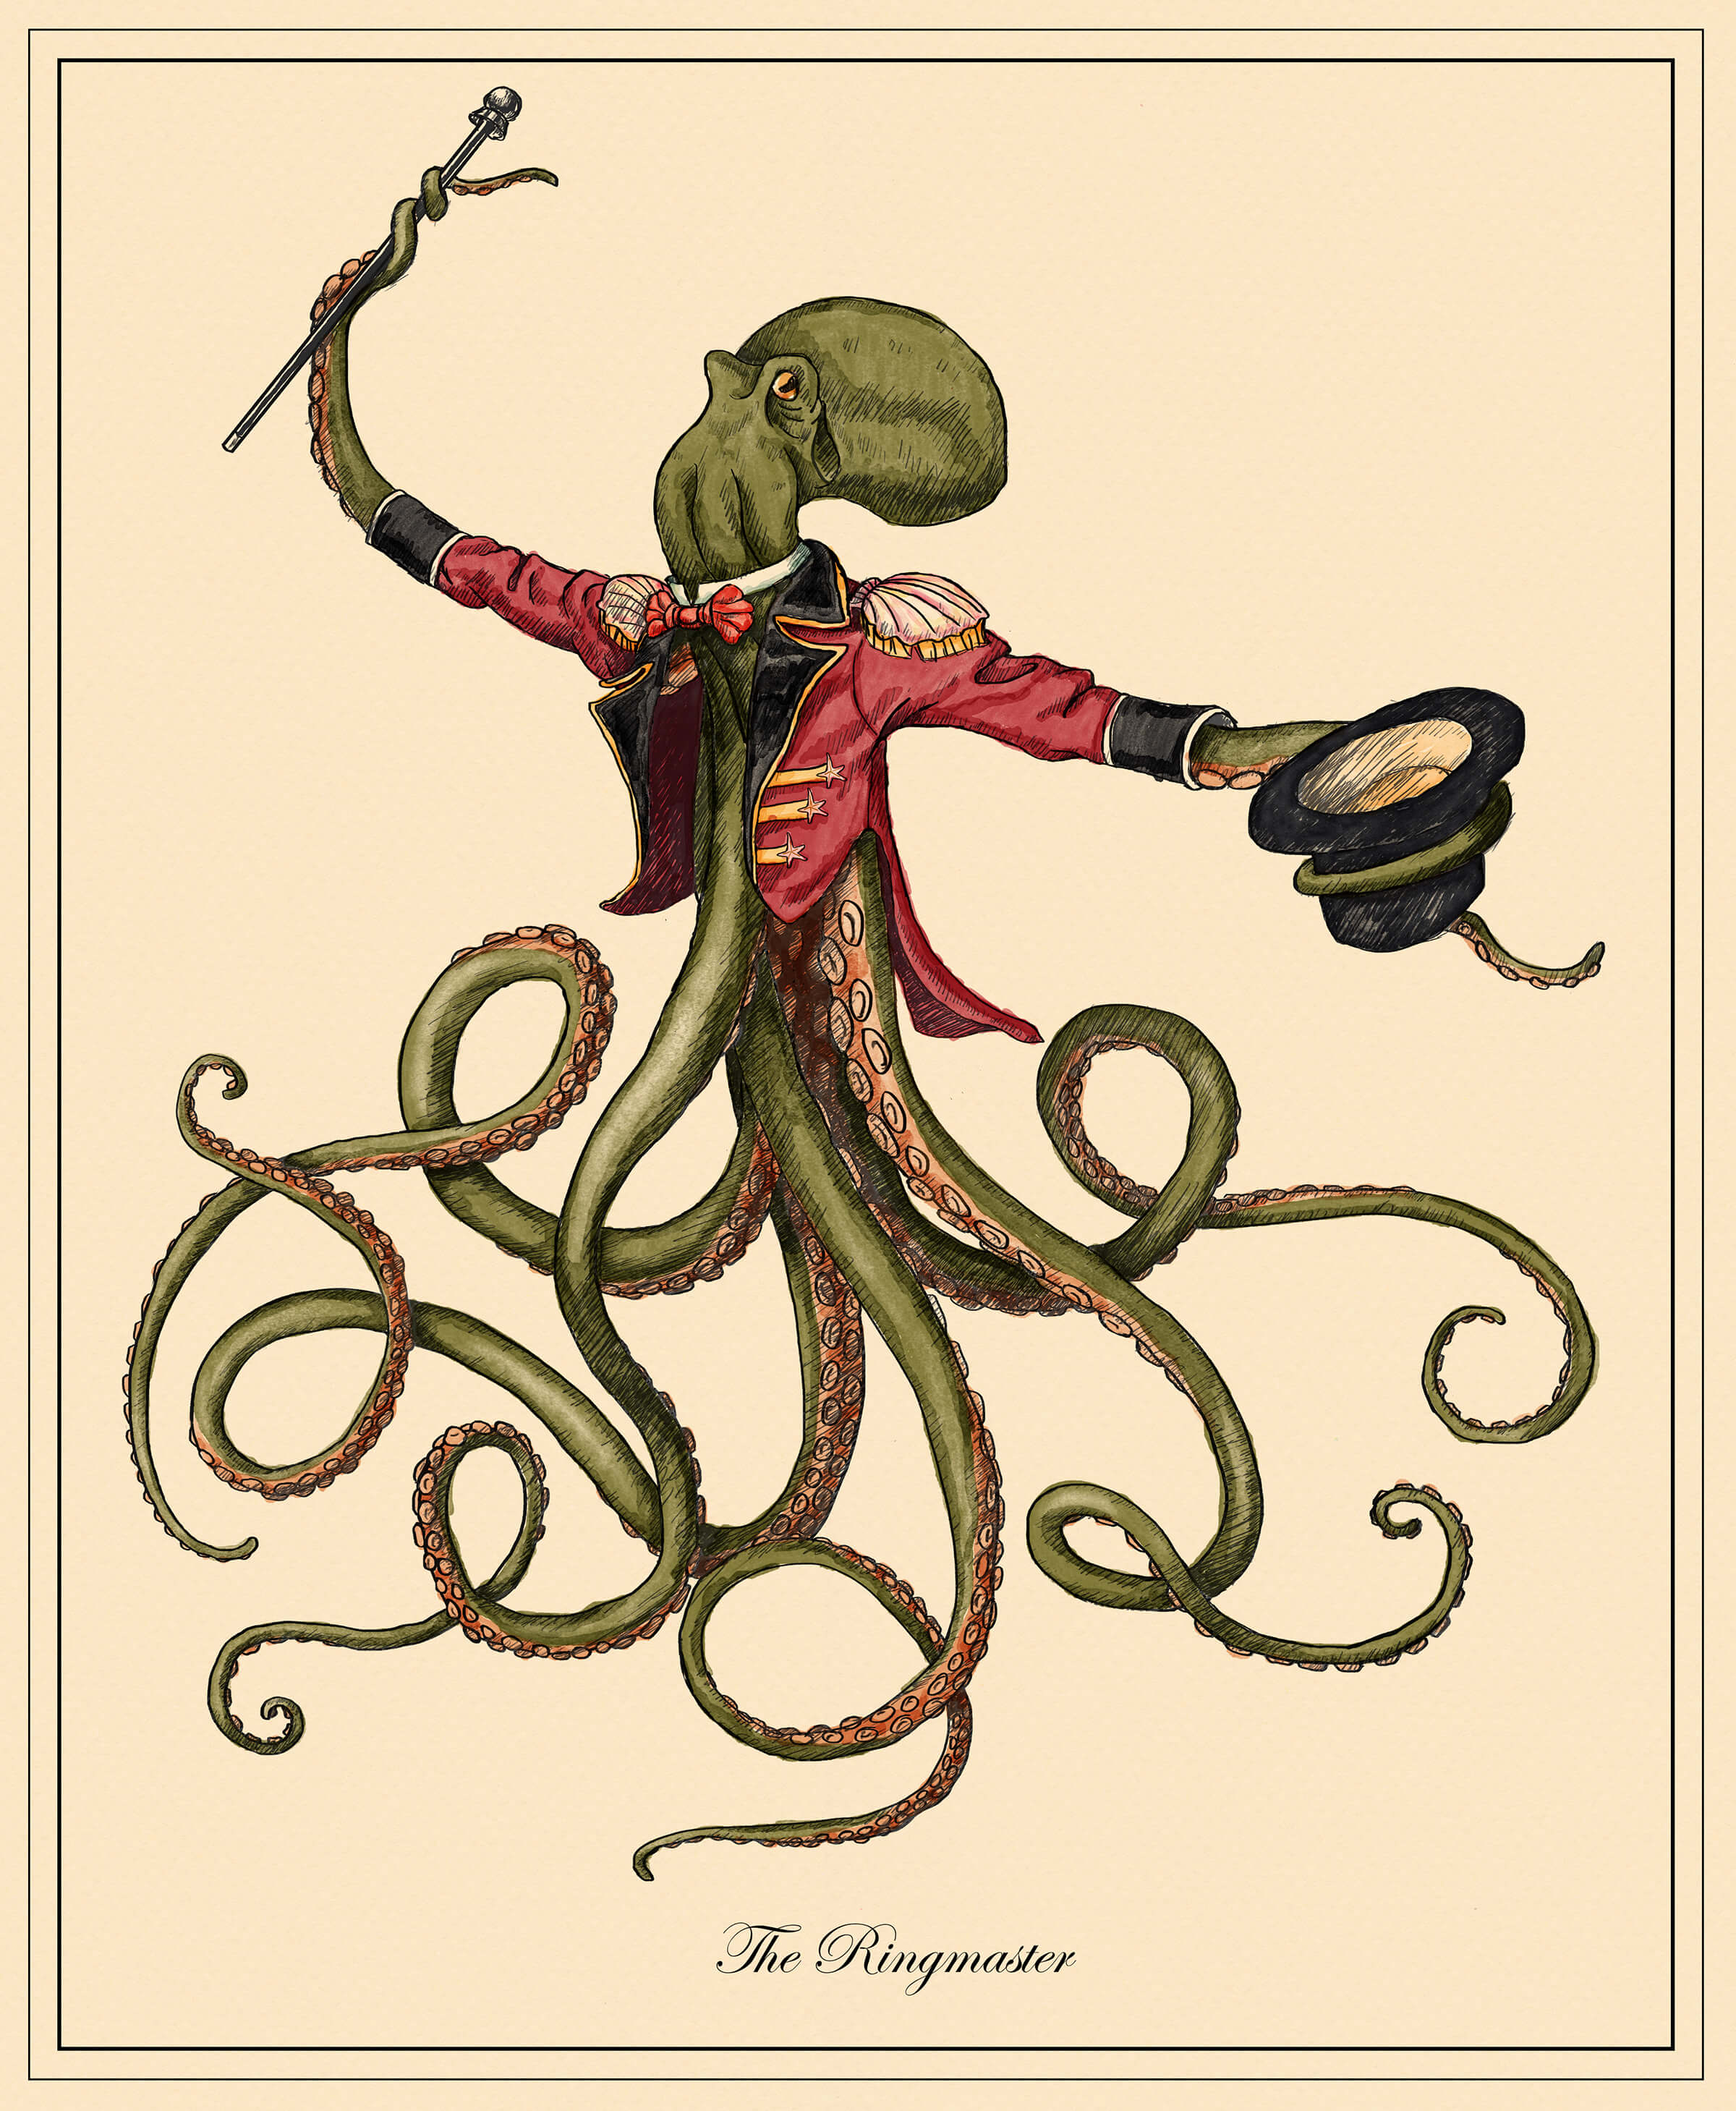 digital painting of an octopus in a circus ringmaster's costume holding a top hat